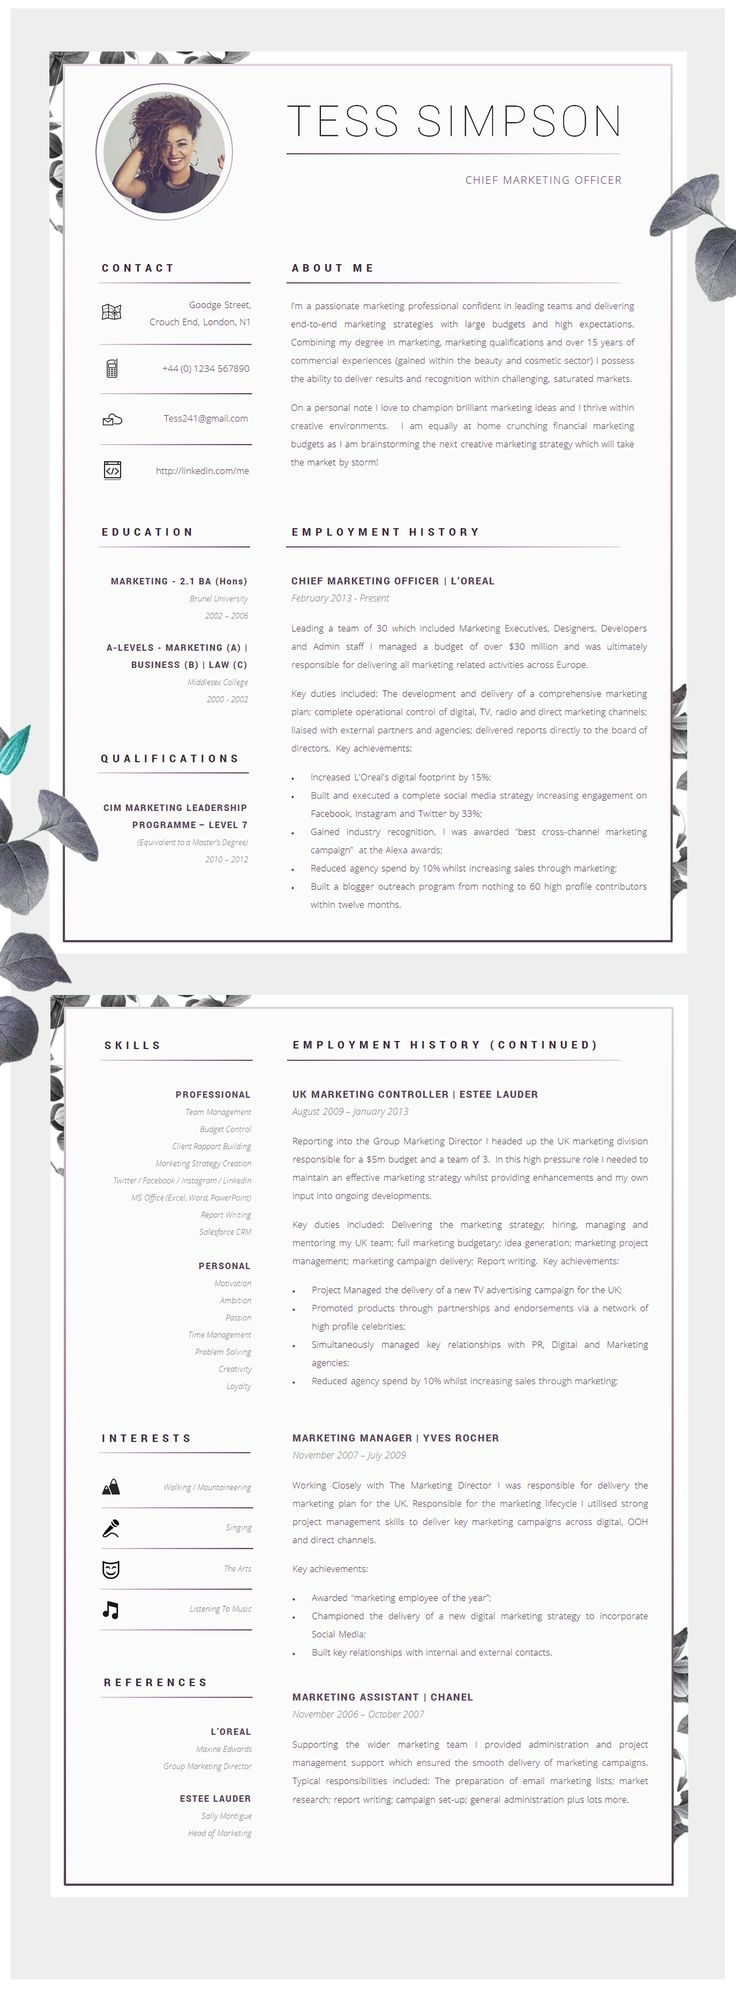 Chief Marketing Officer Resume Glamorous 1069 Best Resume Ideas Images On Pinterest  Resume Ideas Resume .